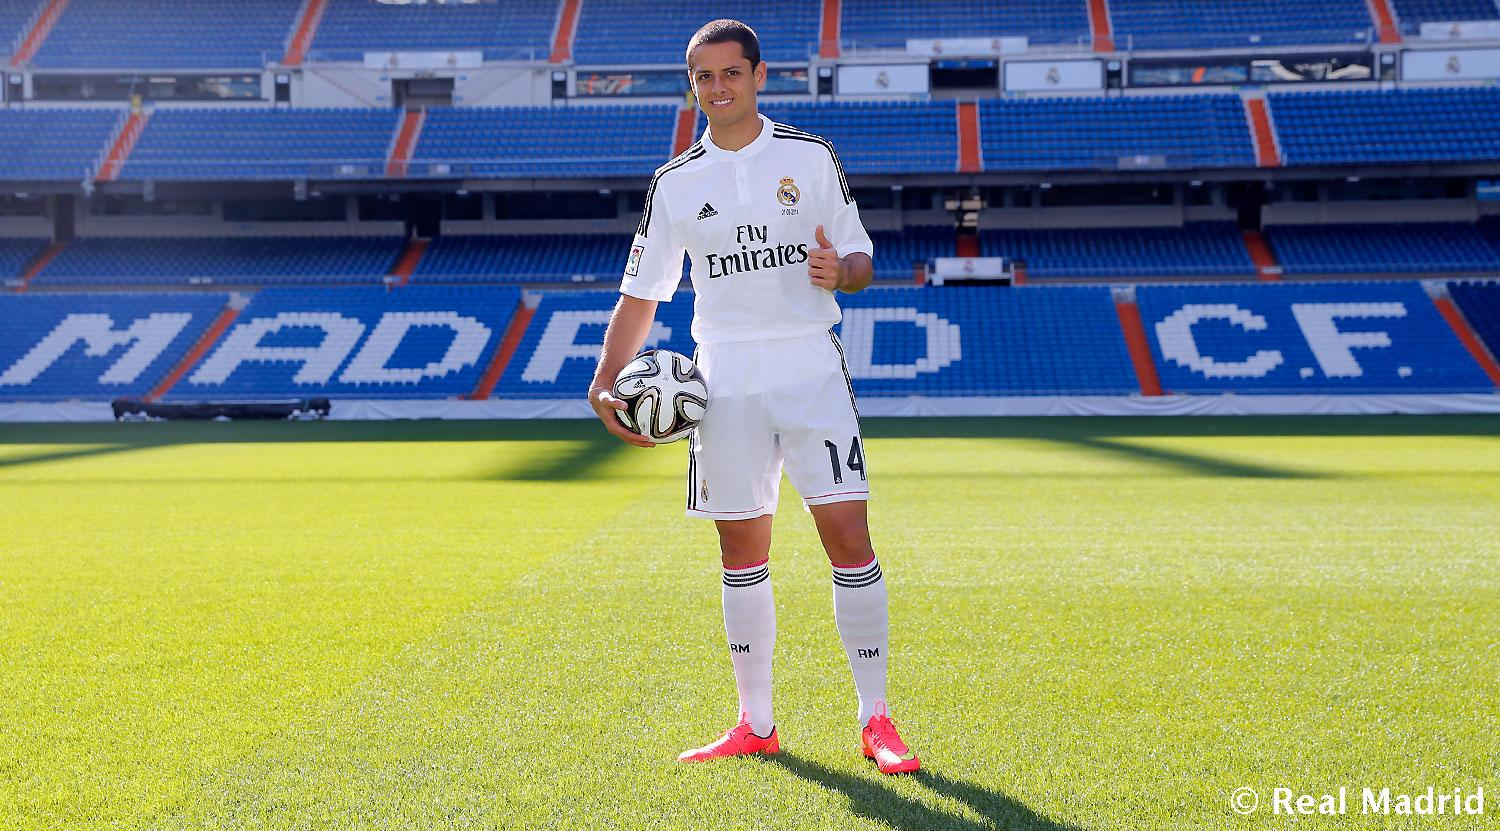 Real Madrid - Chicharito Hernández - 01-09-2014